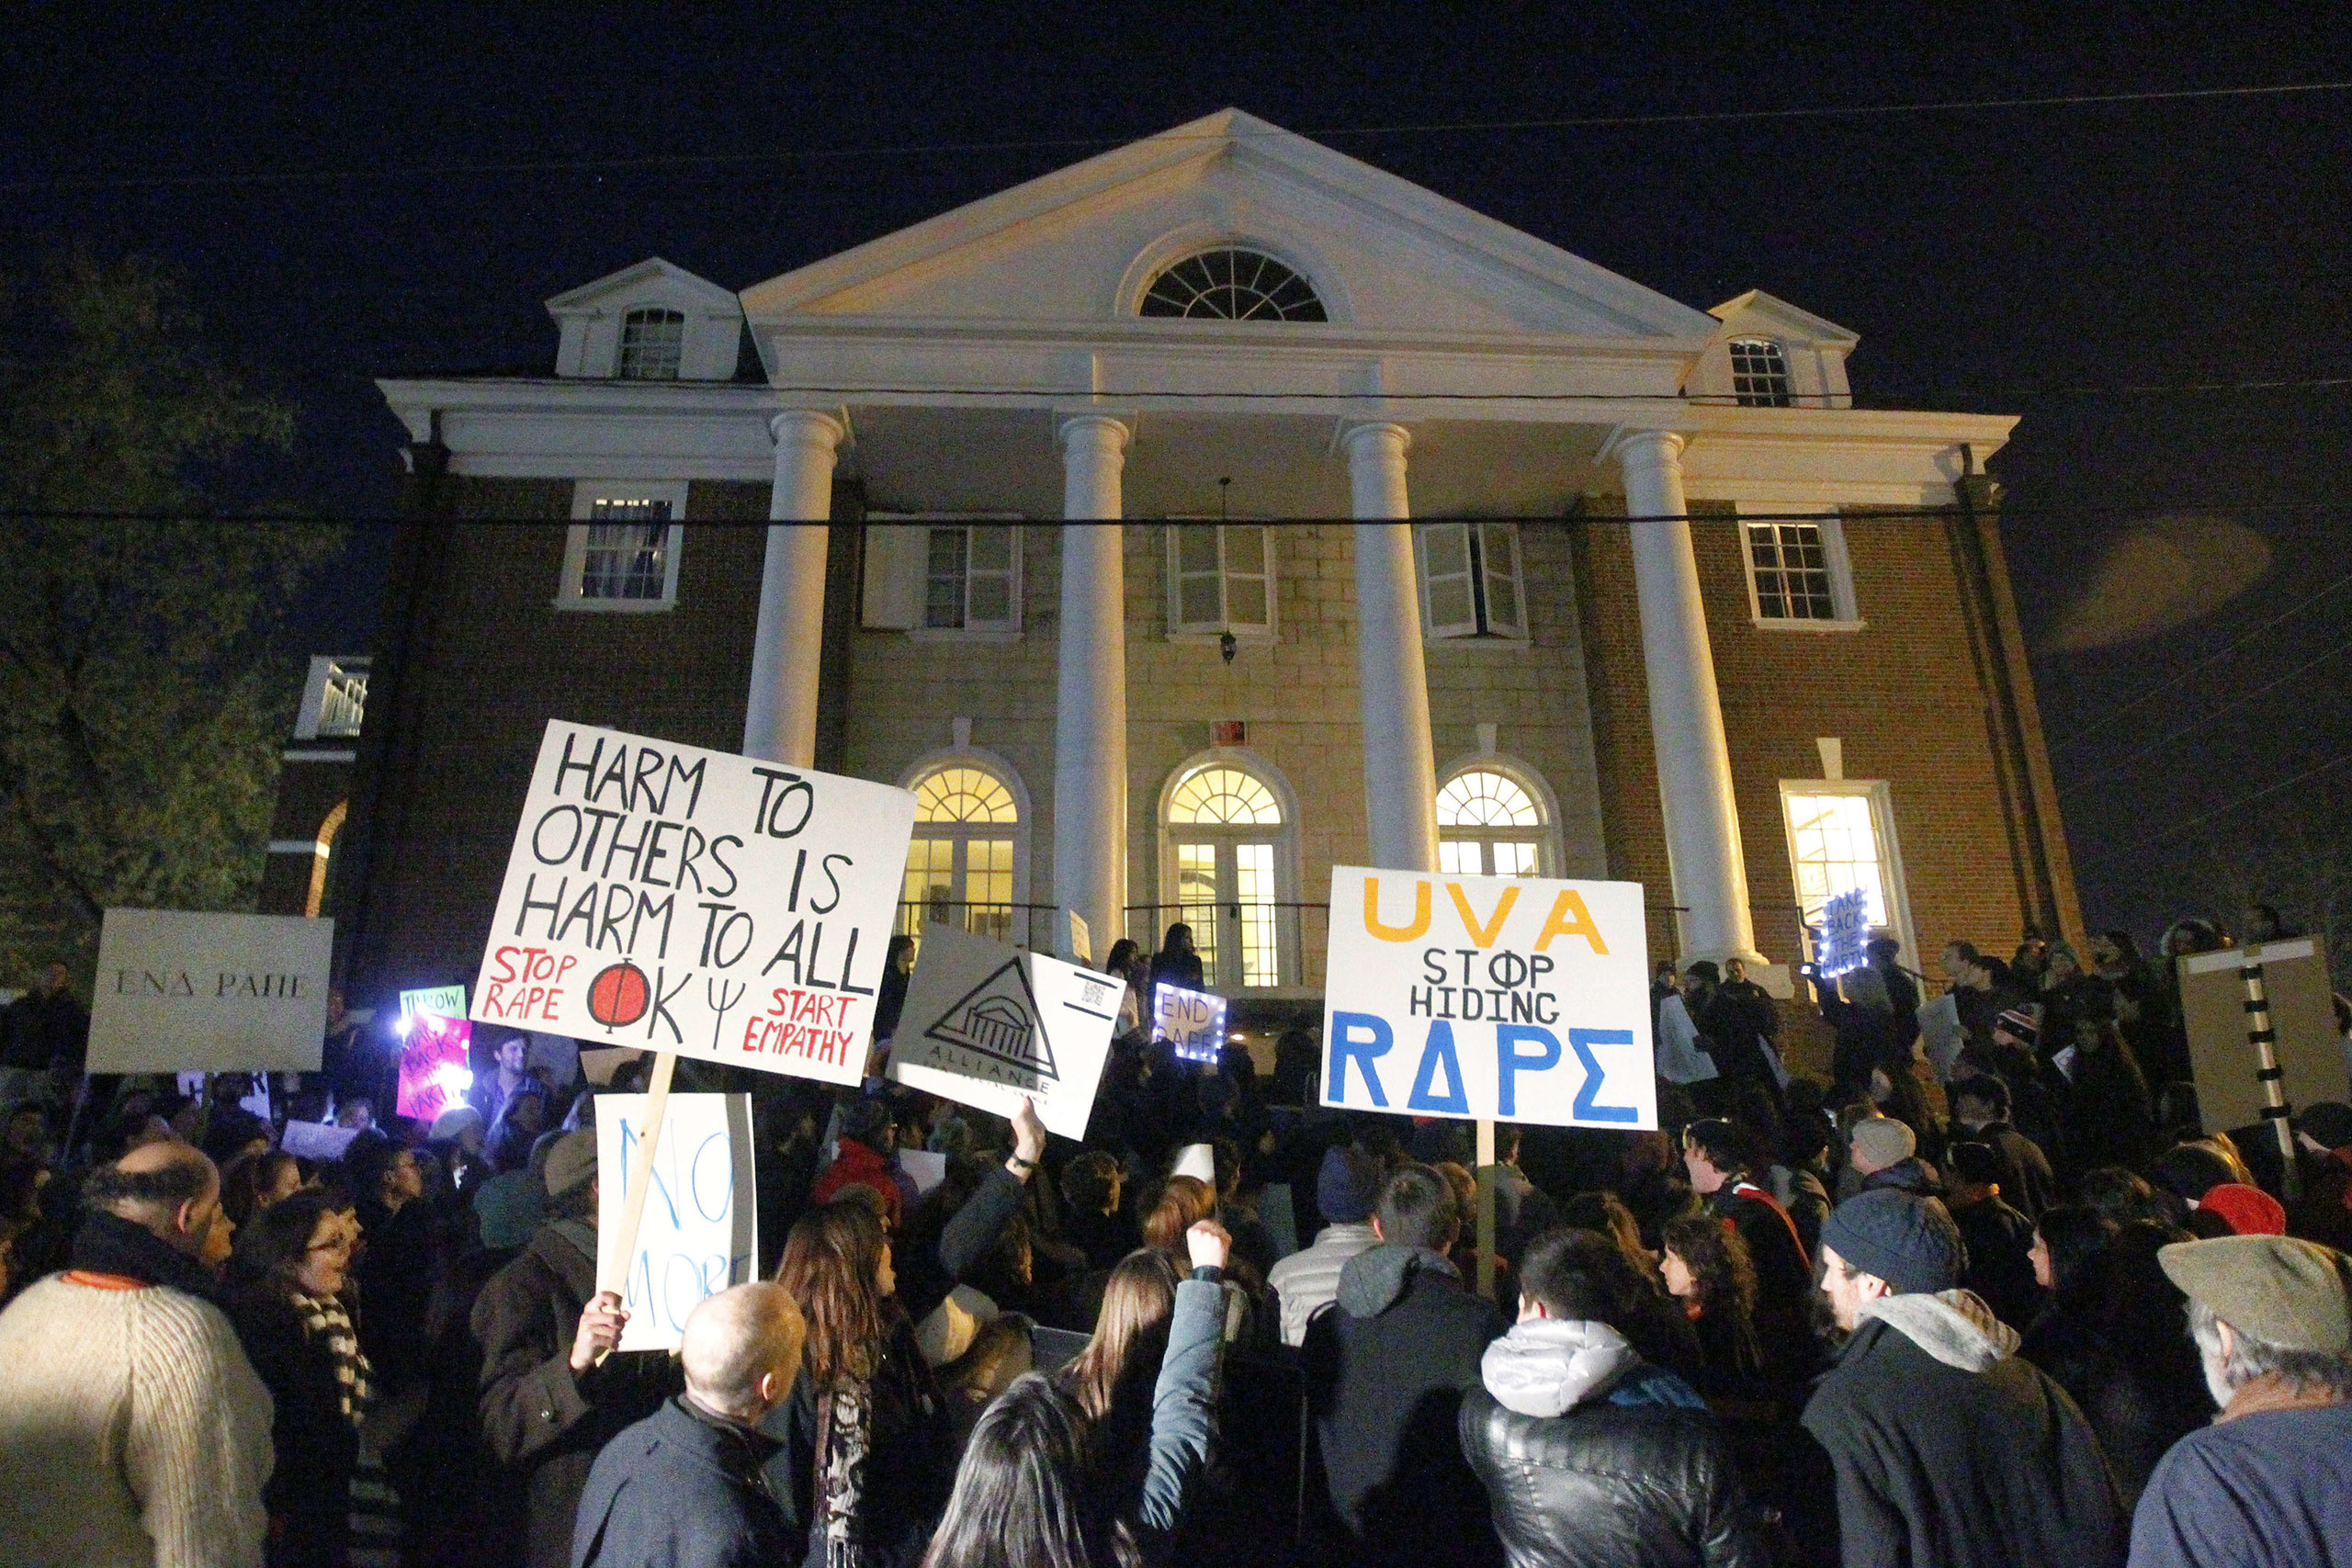 Protesters gather in front of the Phi Kappa Psi fraternity house at the University of Virginia on Nov. 22